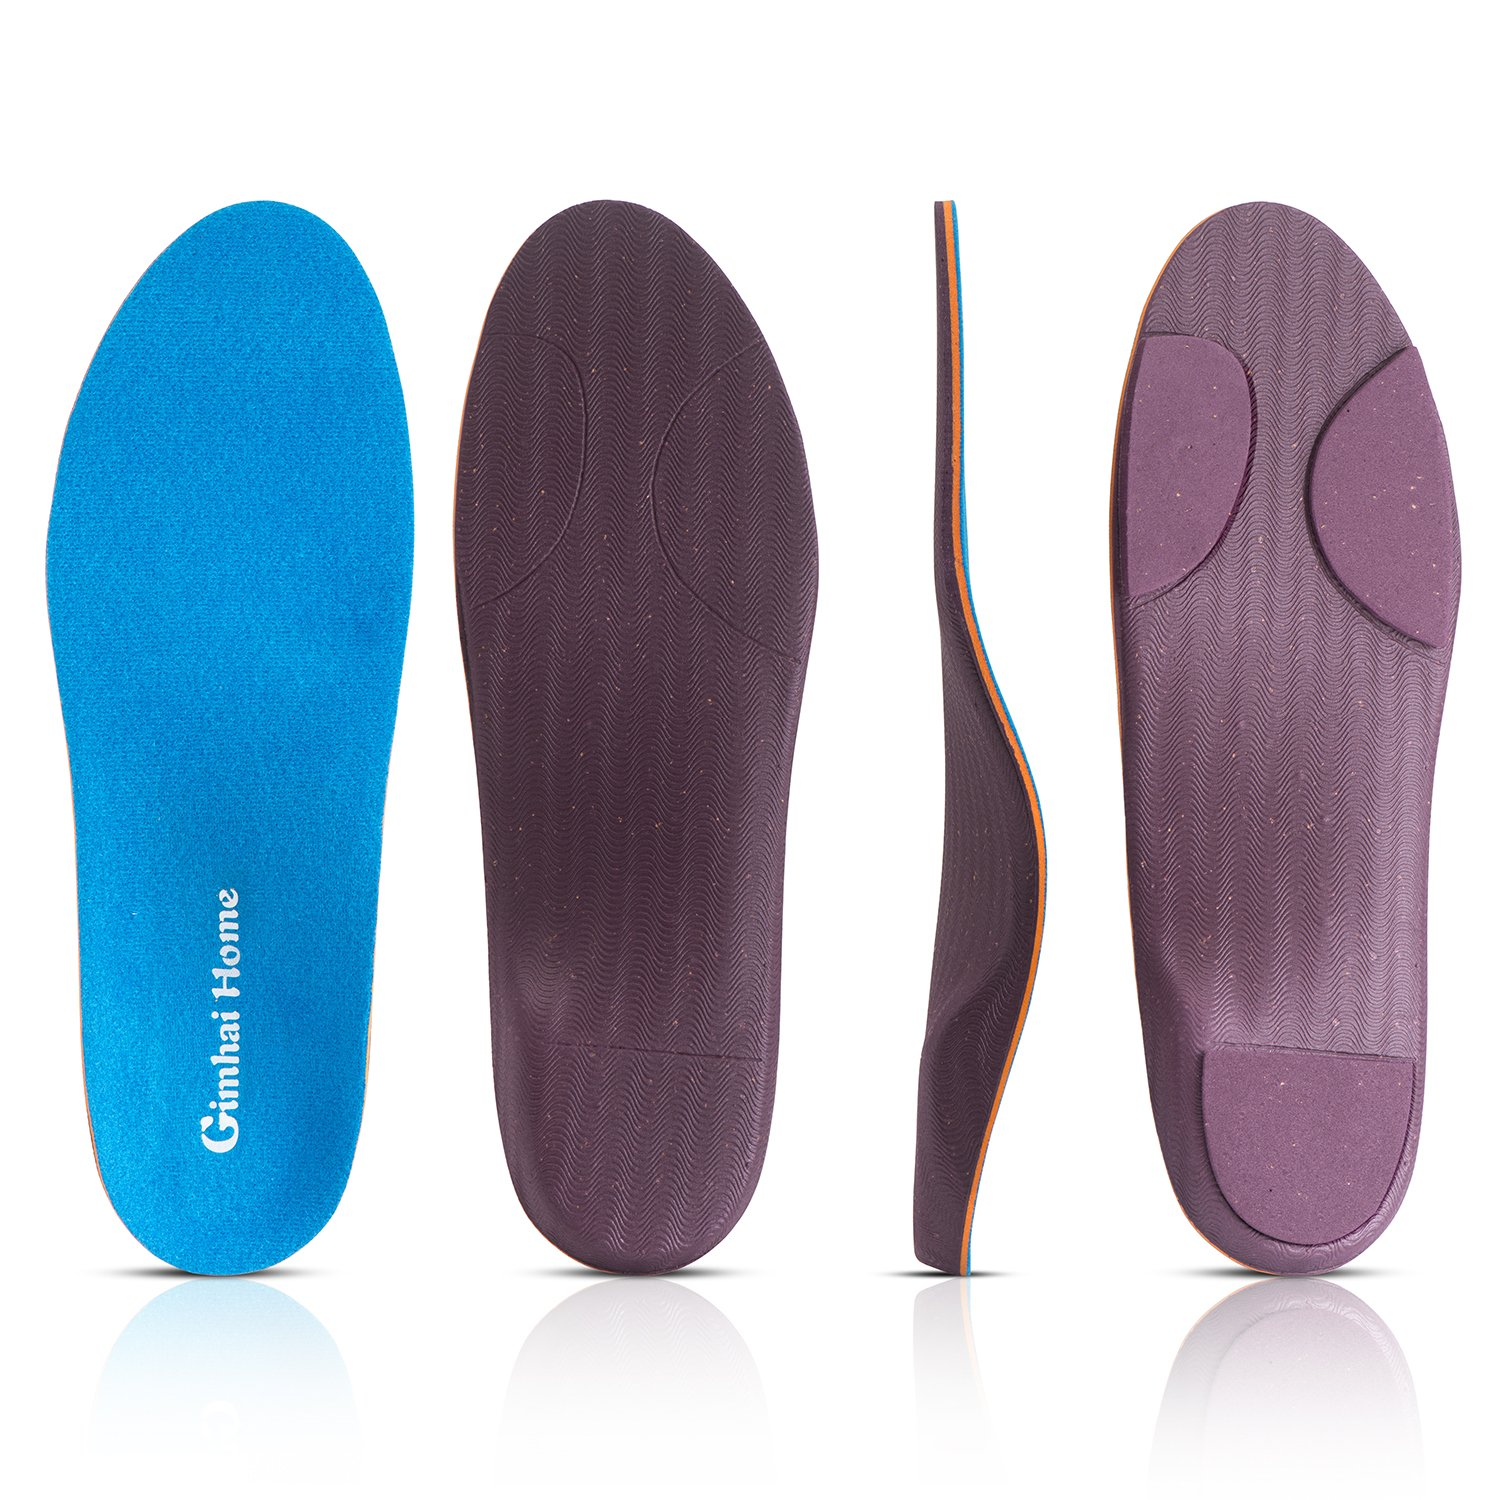 Orthotics Arch Support Shoes Insoles/Inserts for Pronation,Supination,Flat Feet,Plantar Fasciitis,Heel Pain,Foot Pain,Bunion for Men and Women (US MEN(4-4.5)-WOMEN(6-6.5)-9.06''-230MM)